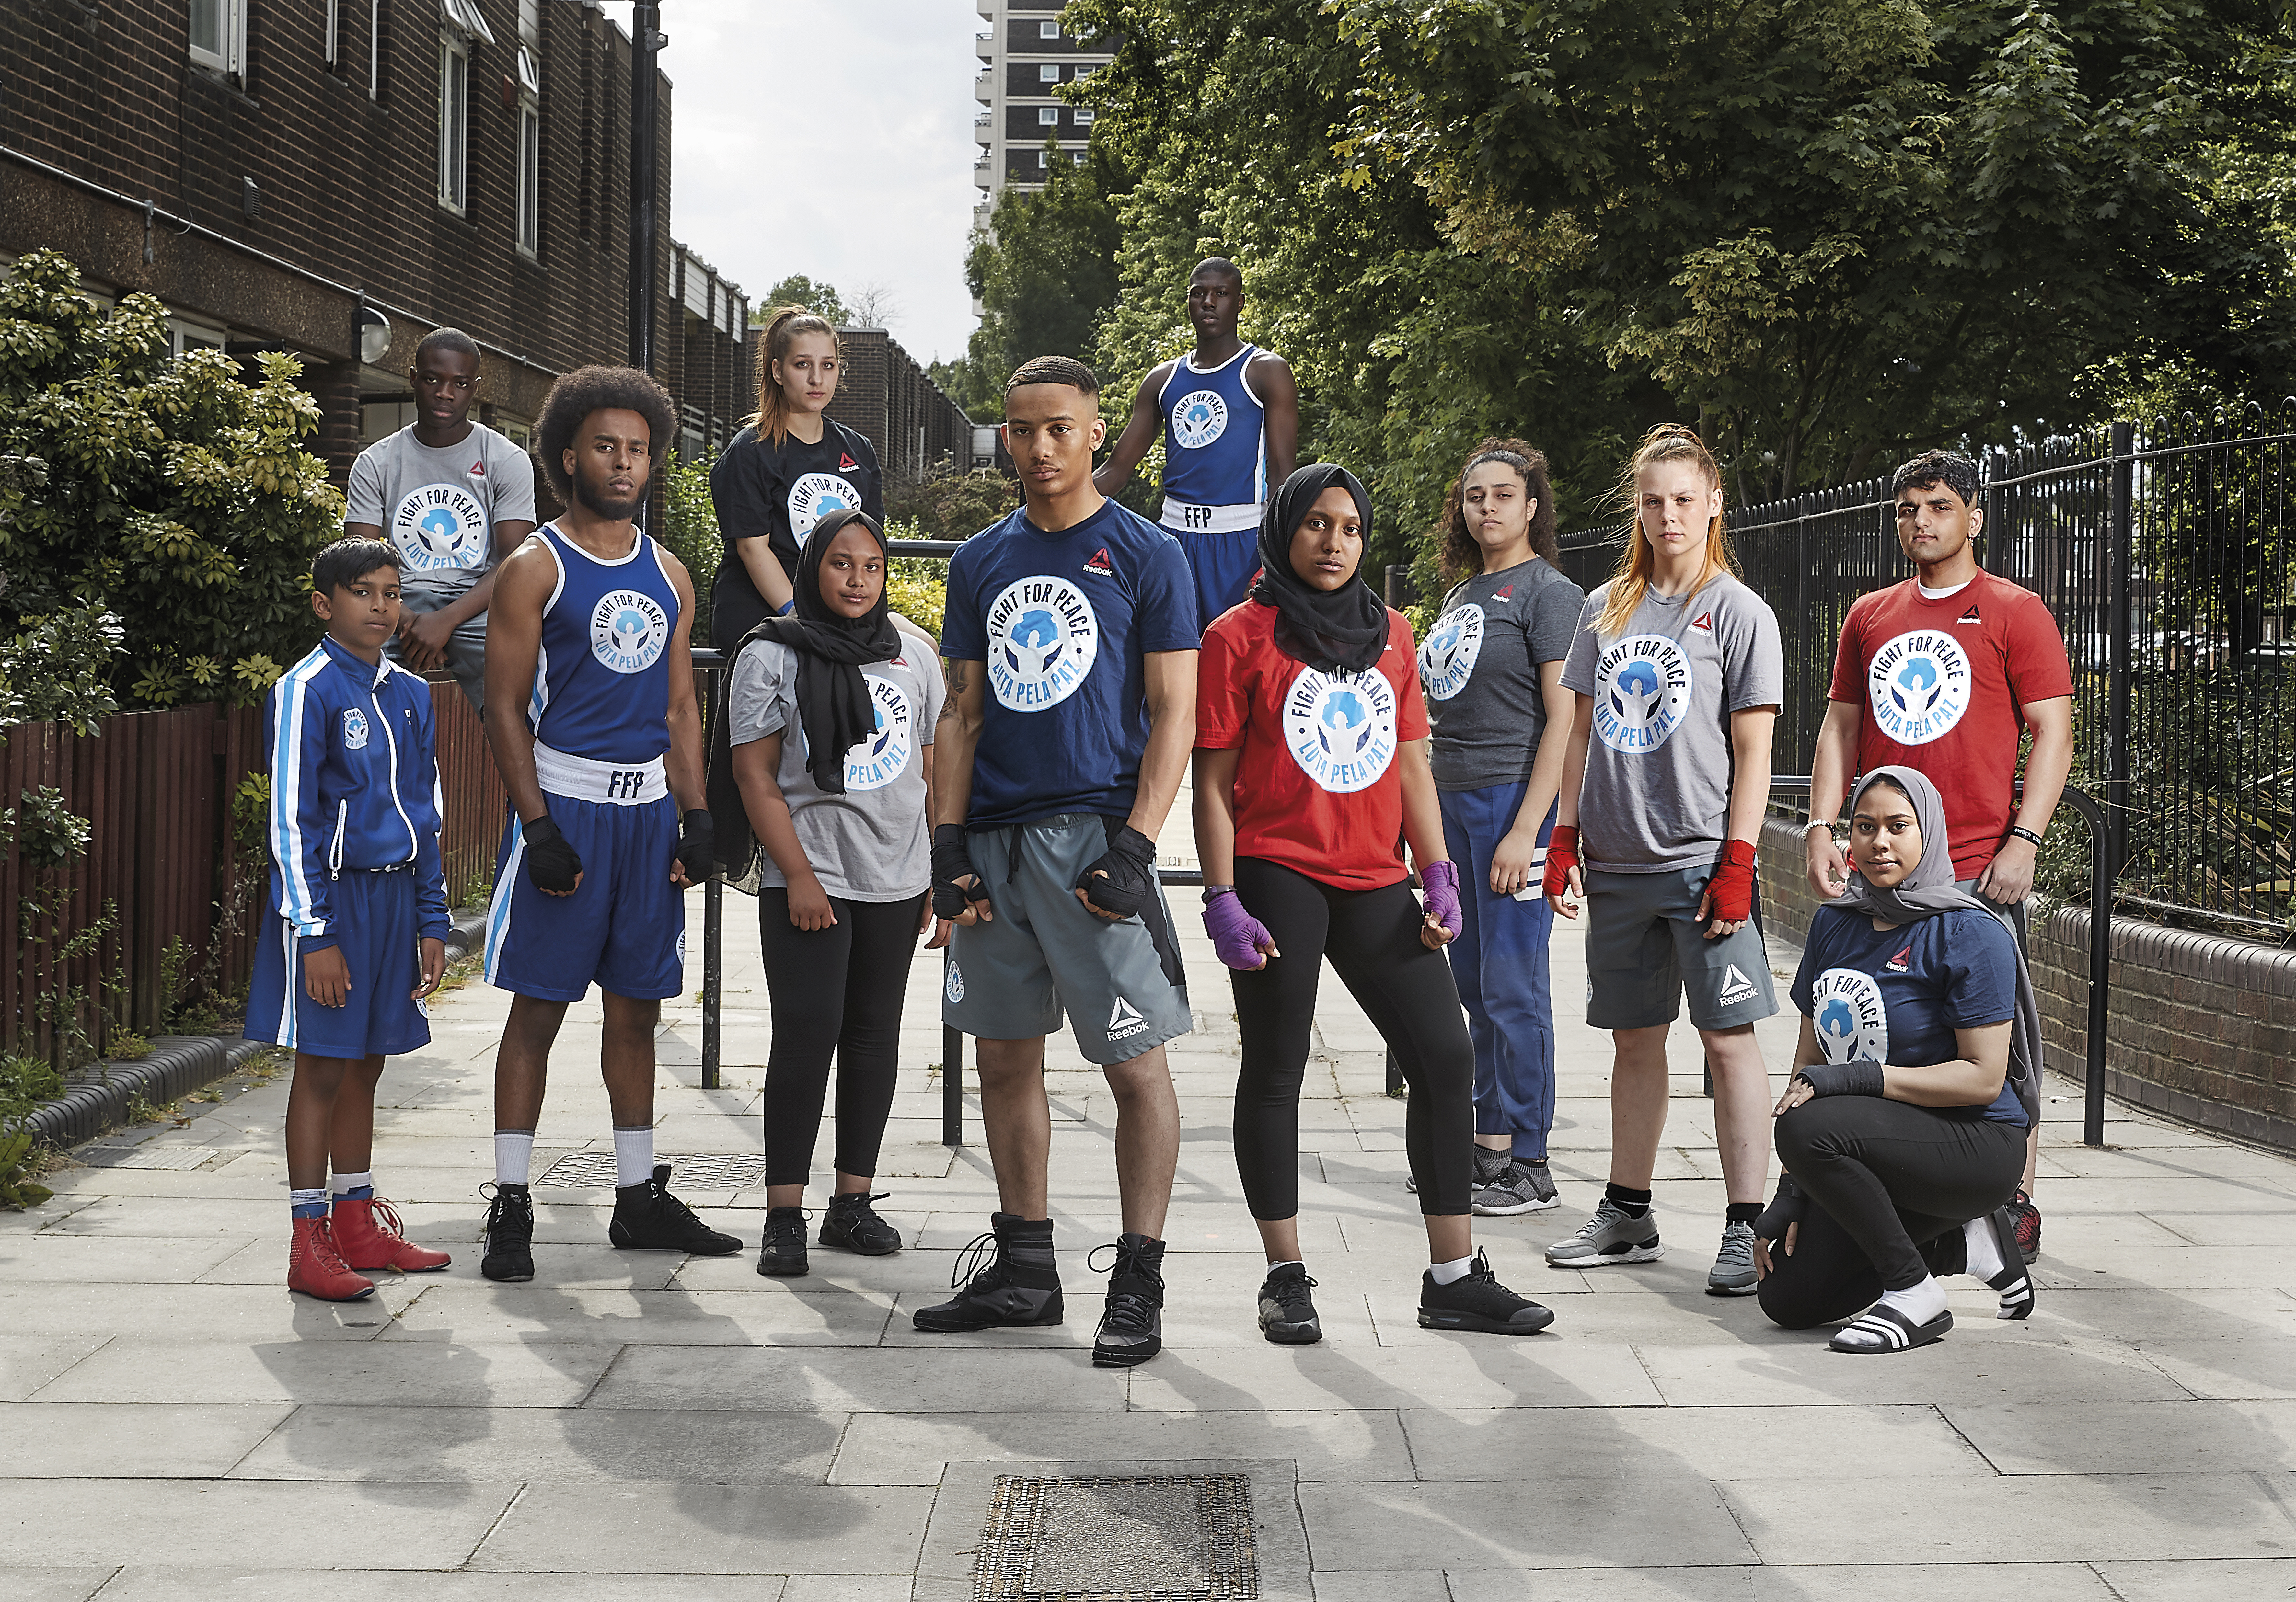 Group shot of young people in Fight for Peace t-shirts